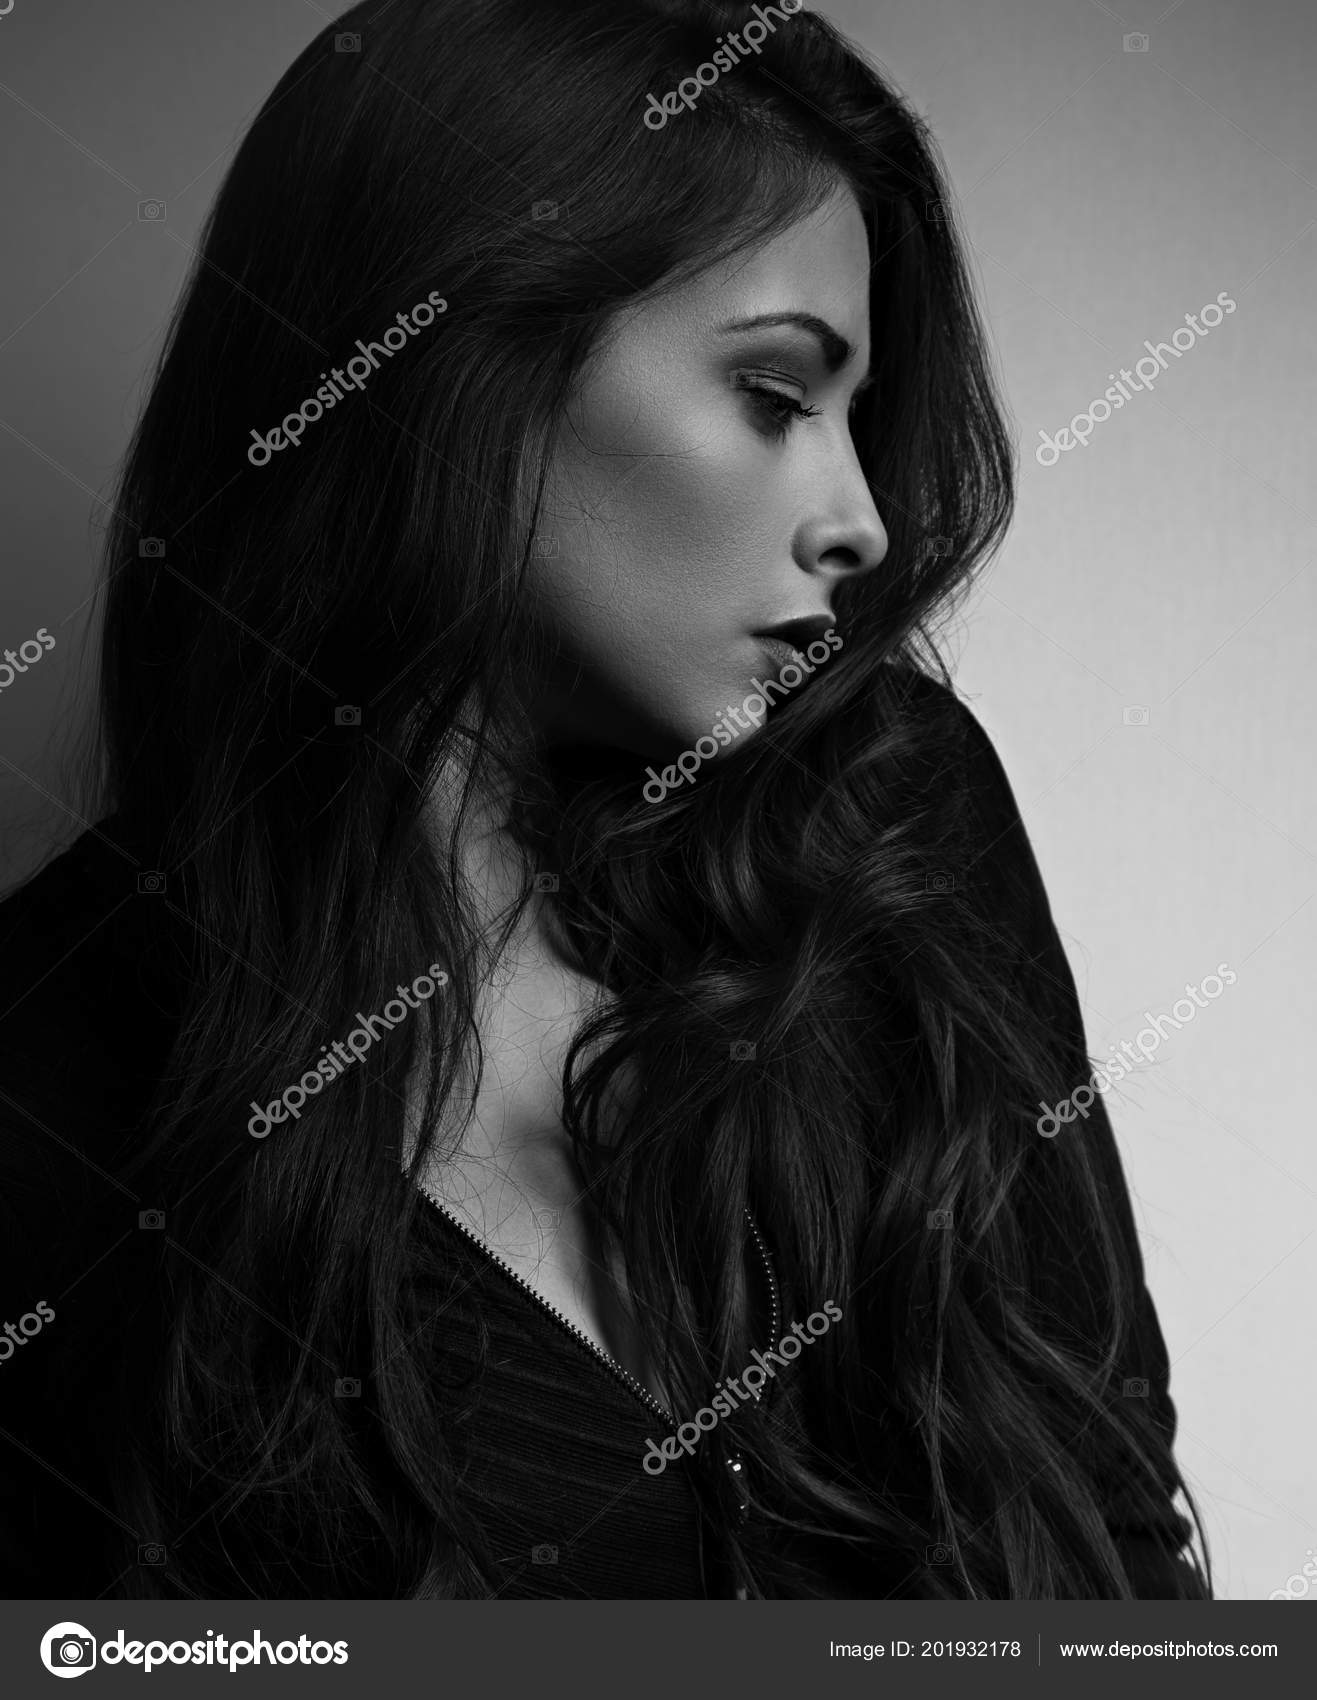 Thinking emotional beautiful woman profile looking long hair dark